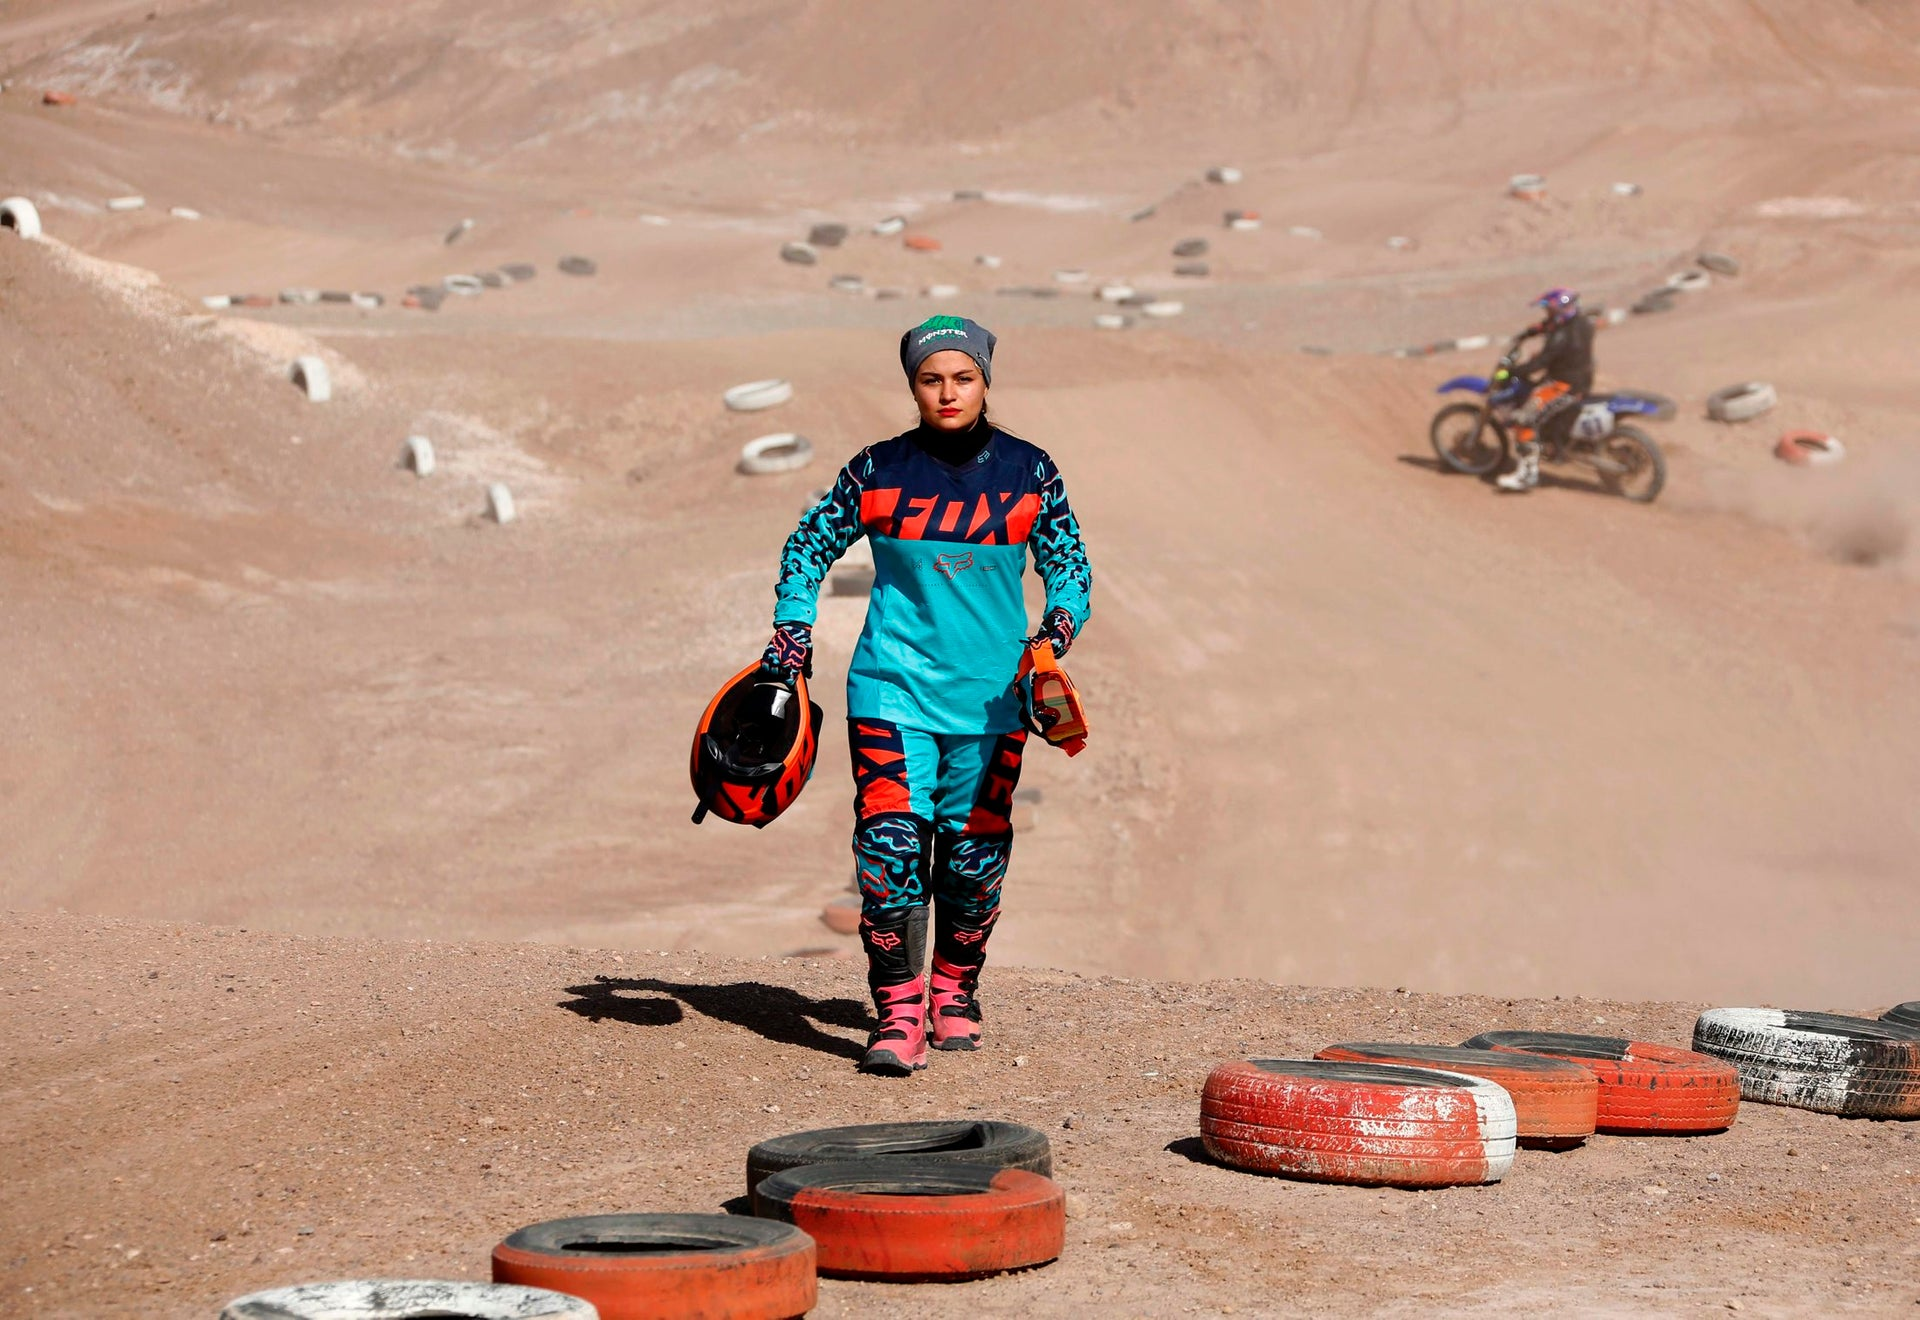 Iranian motorbike champion Behnaz Shafiei walks during a training session in Parand, southwest of Tehran, on February 27, 2017.